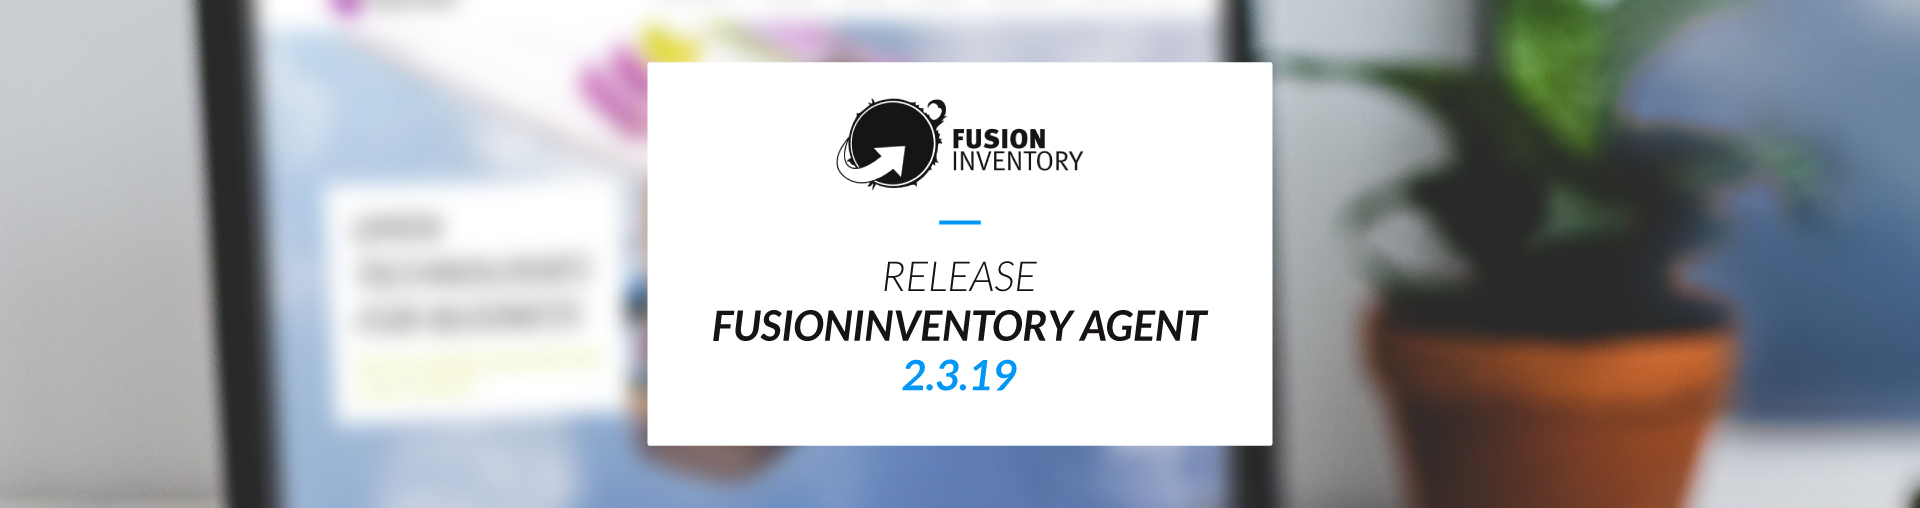 FusionInventory release 2.3.19